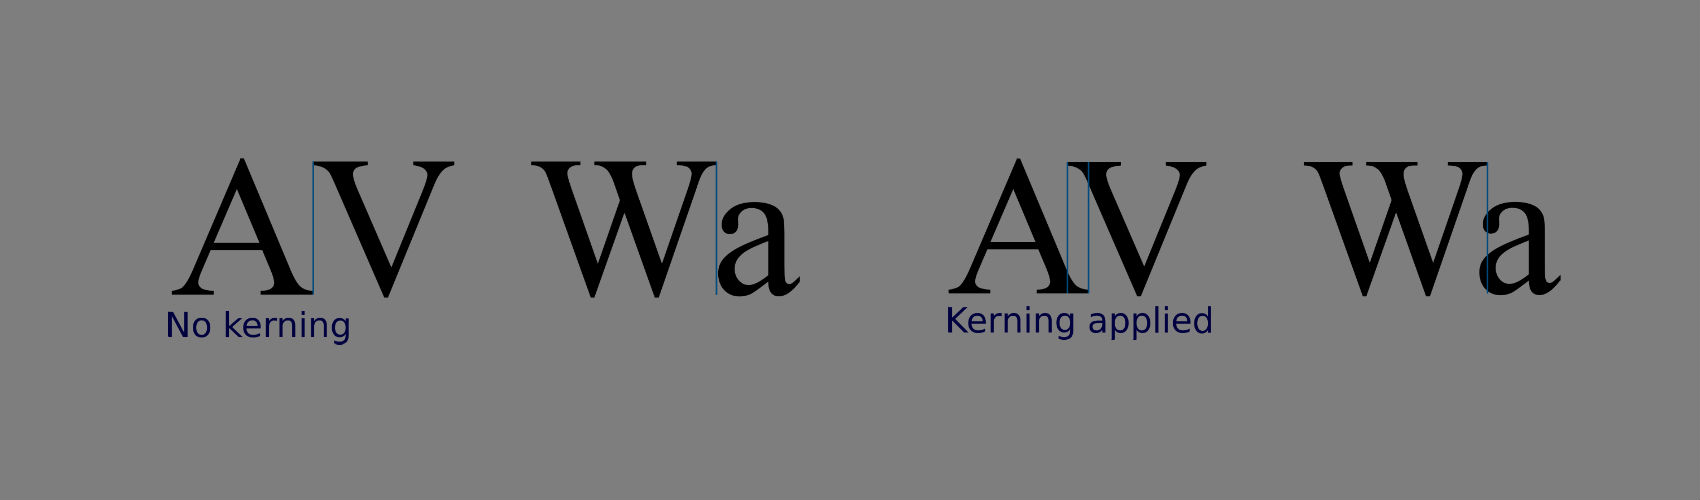 Kerning Typography: What You Should Know